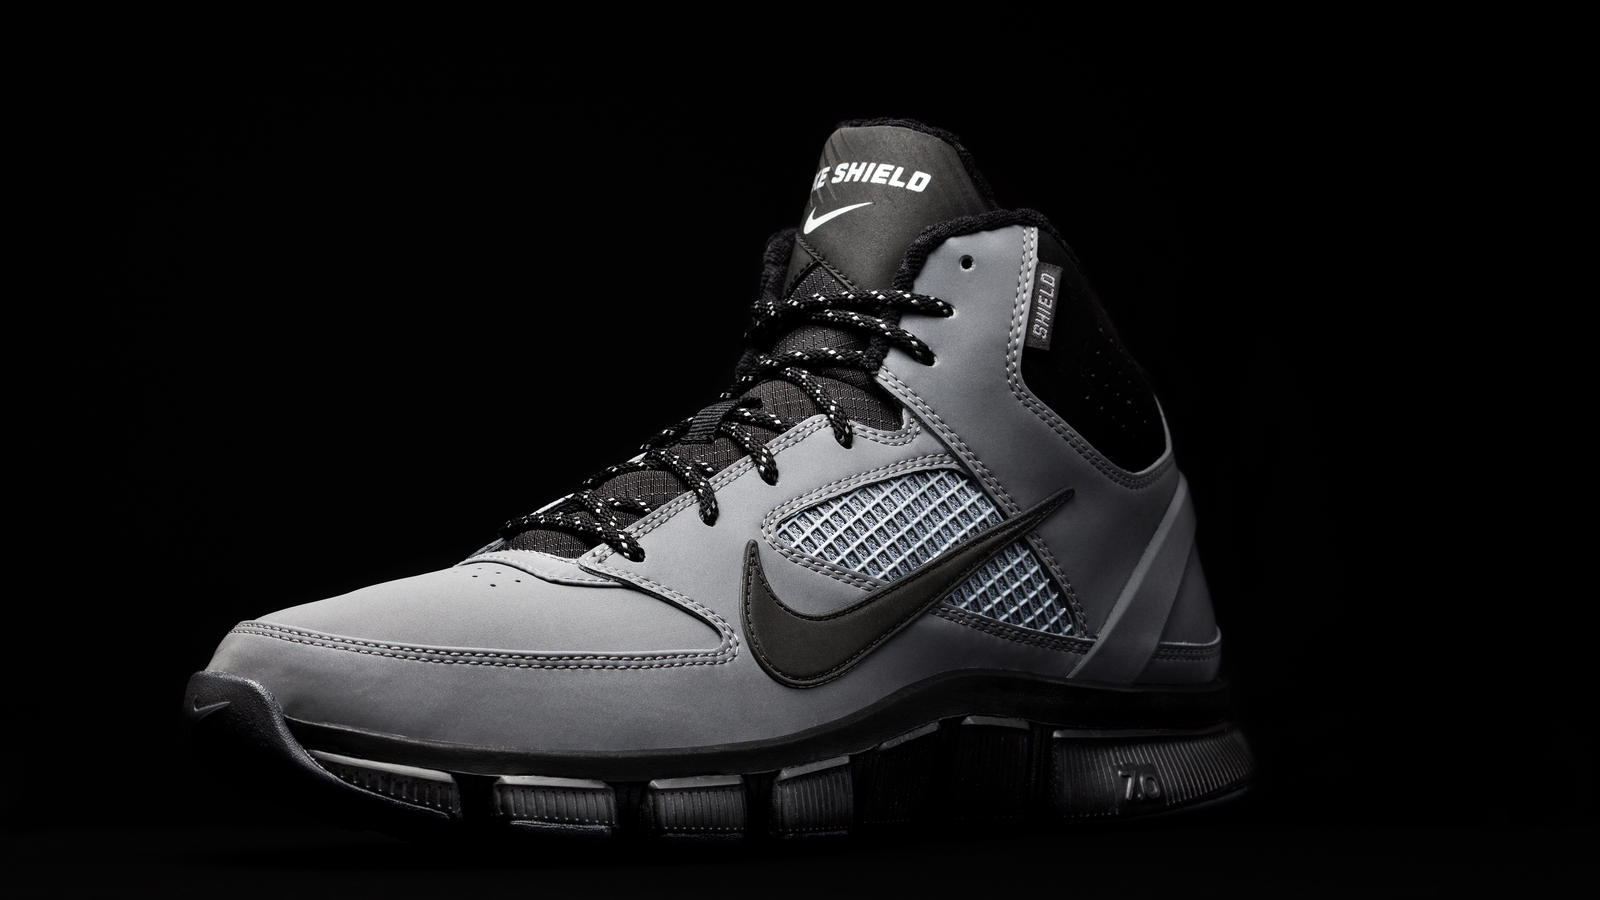 new concept 94619 a819f Designed to the training specifications of athletes across multiple sports,  the Nike Free Trainer 7.0 Shield features lockdown support, Nike Free  natural ...